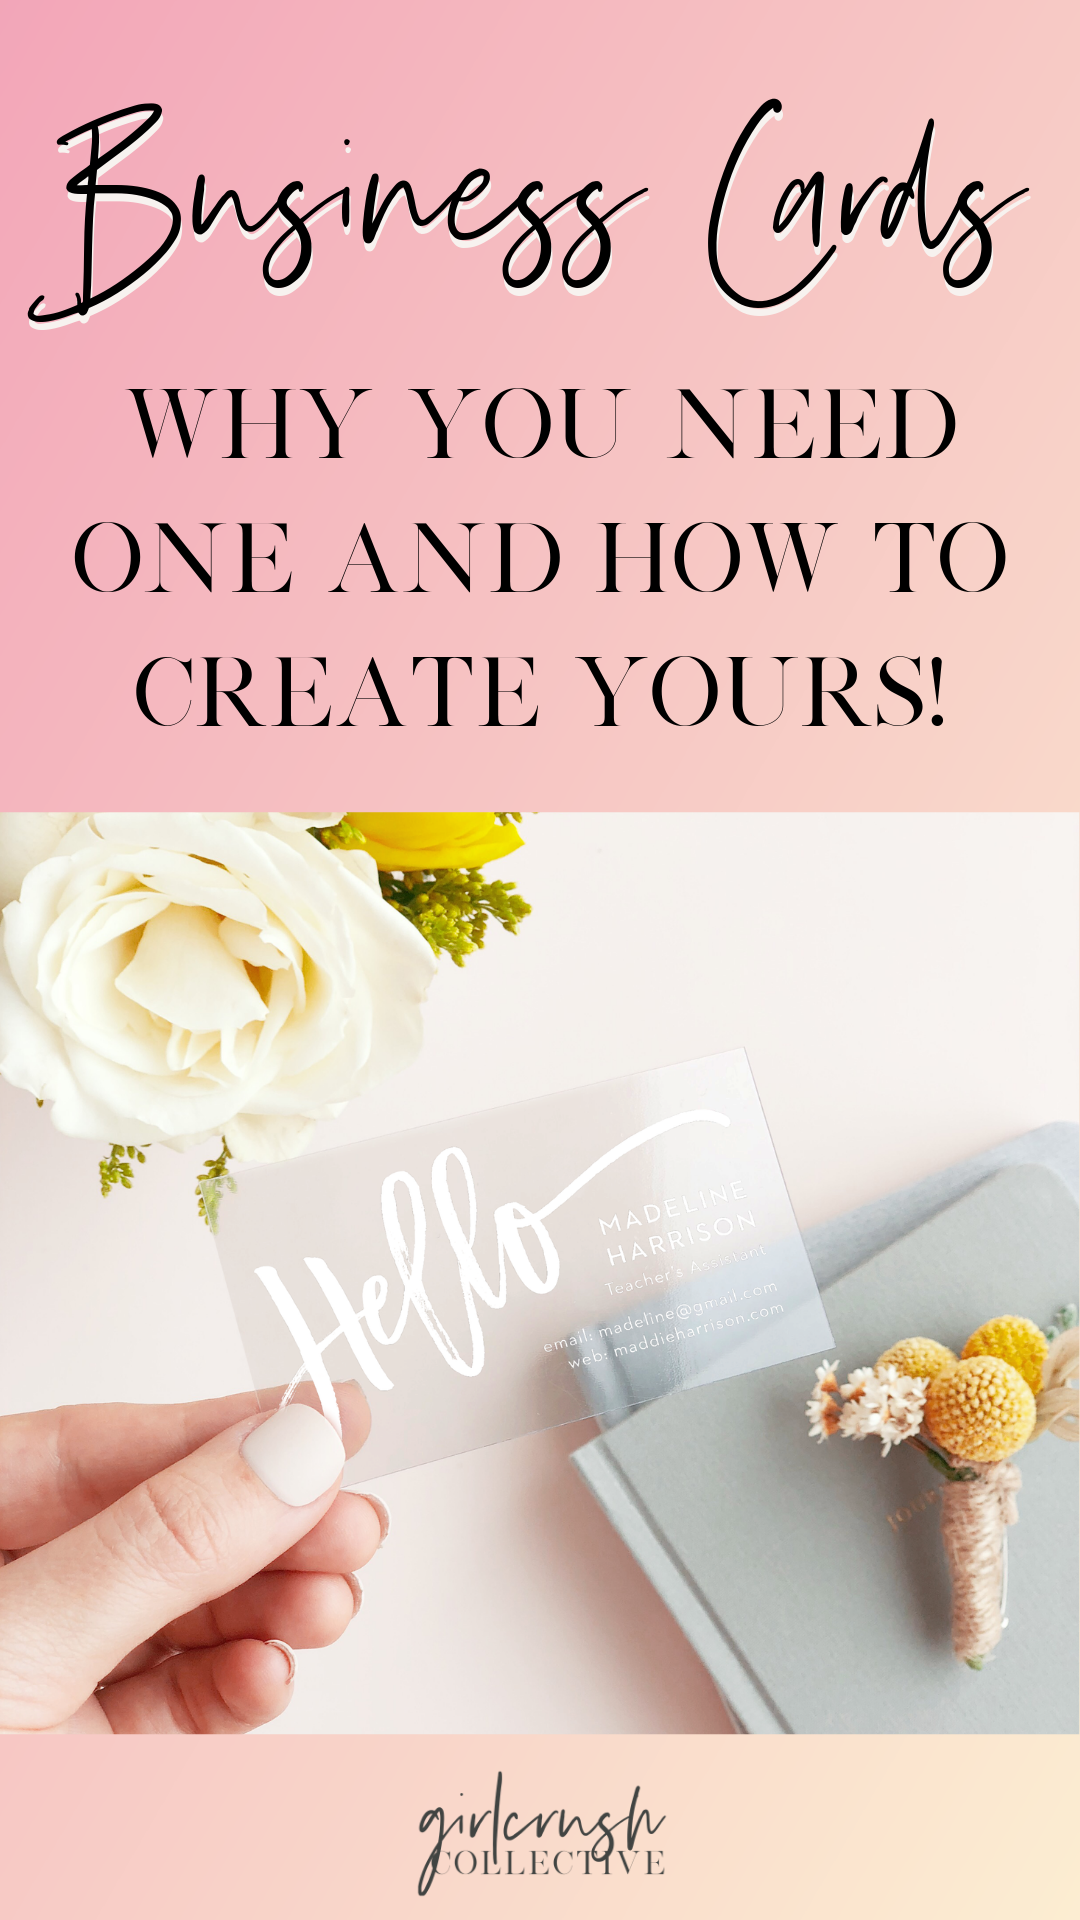 Basic Invite - business cards why you need them and how to make one